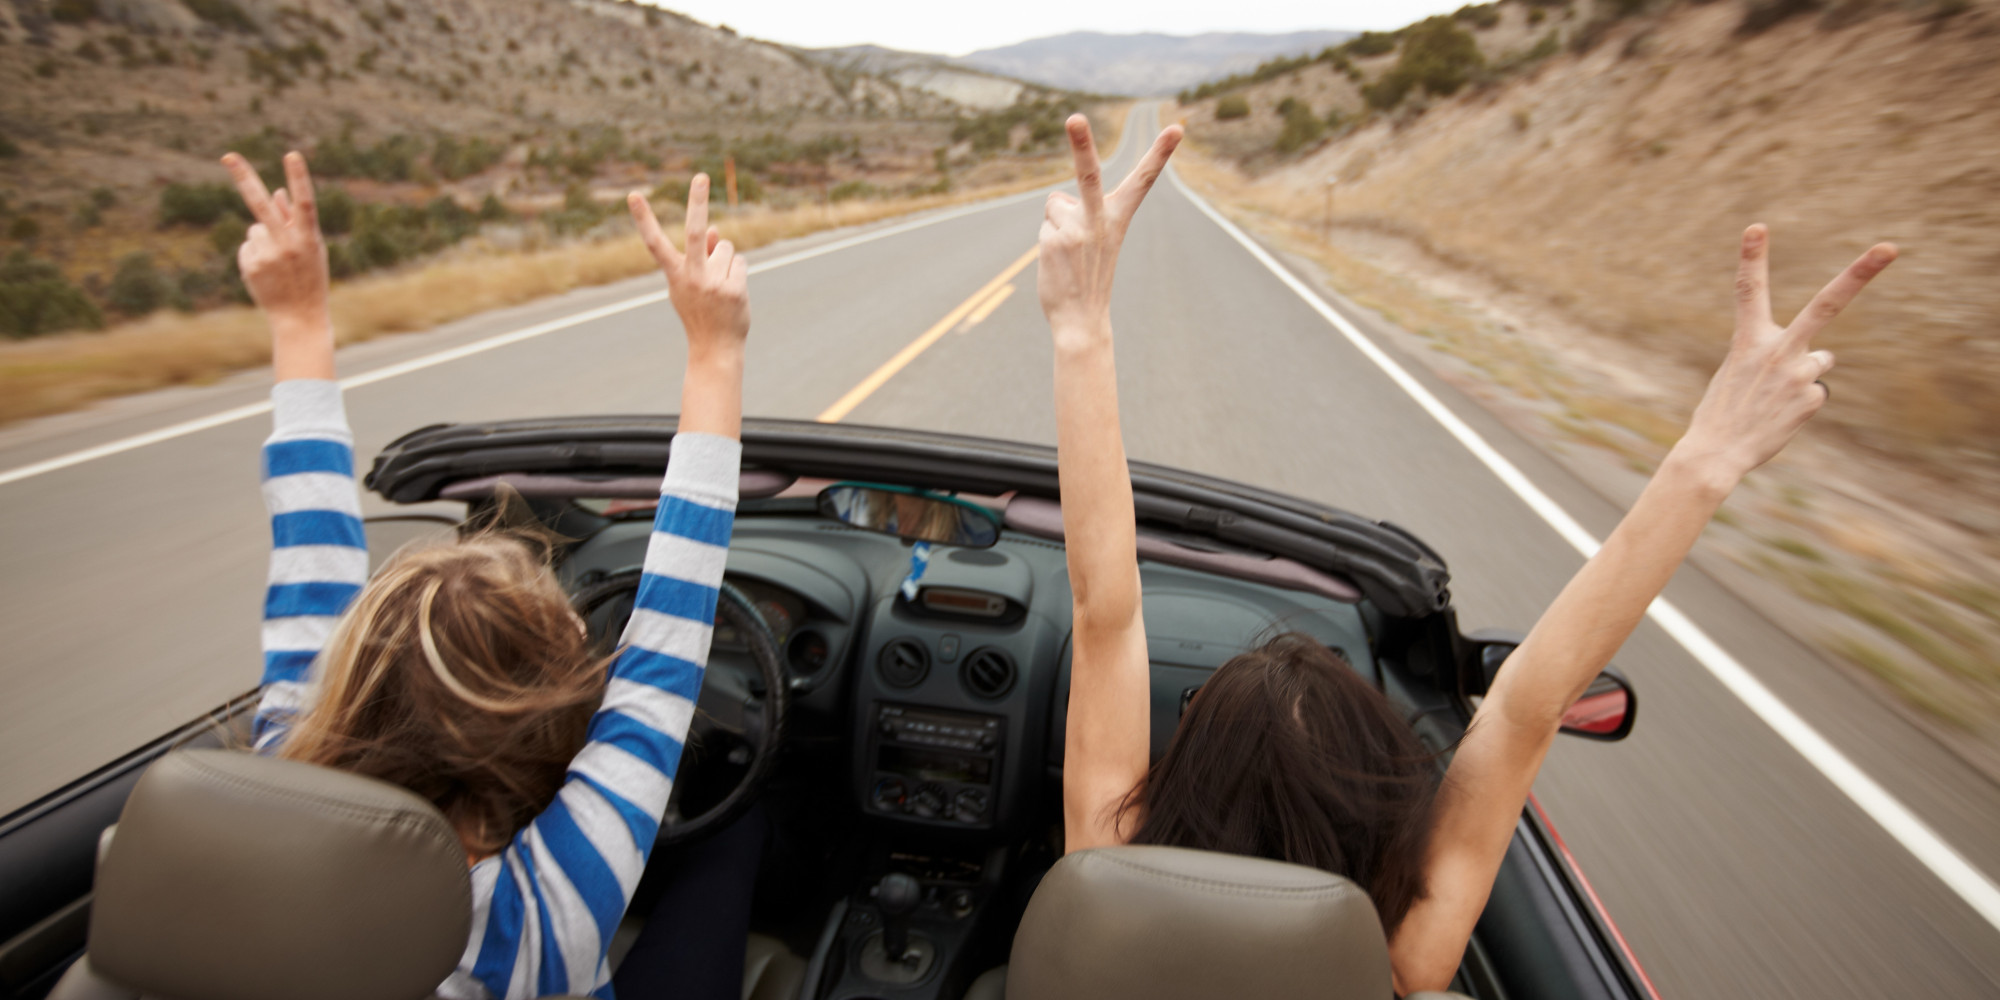 If you are planning that fun road trip with your friends and family you have been talking about for a while, some driving safety tips should be in order.